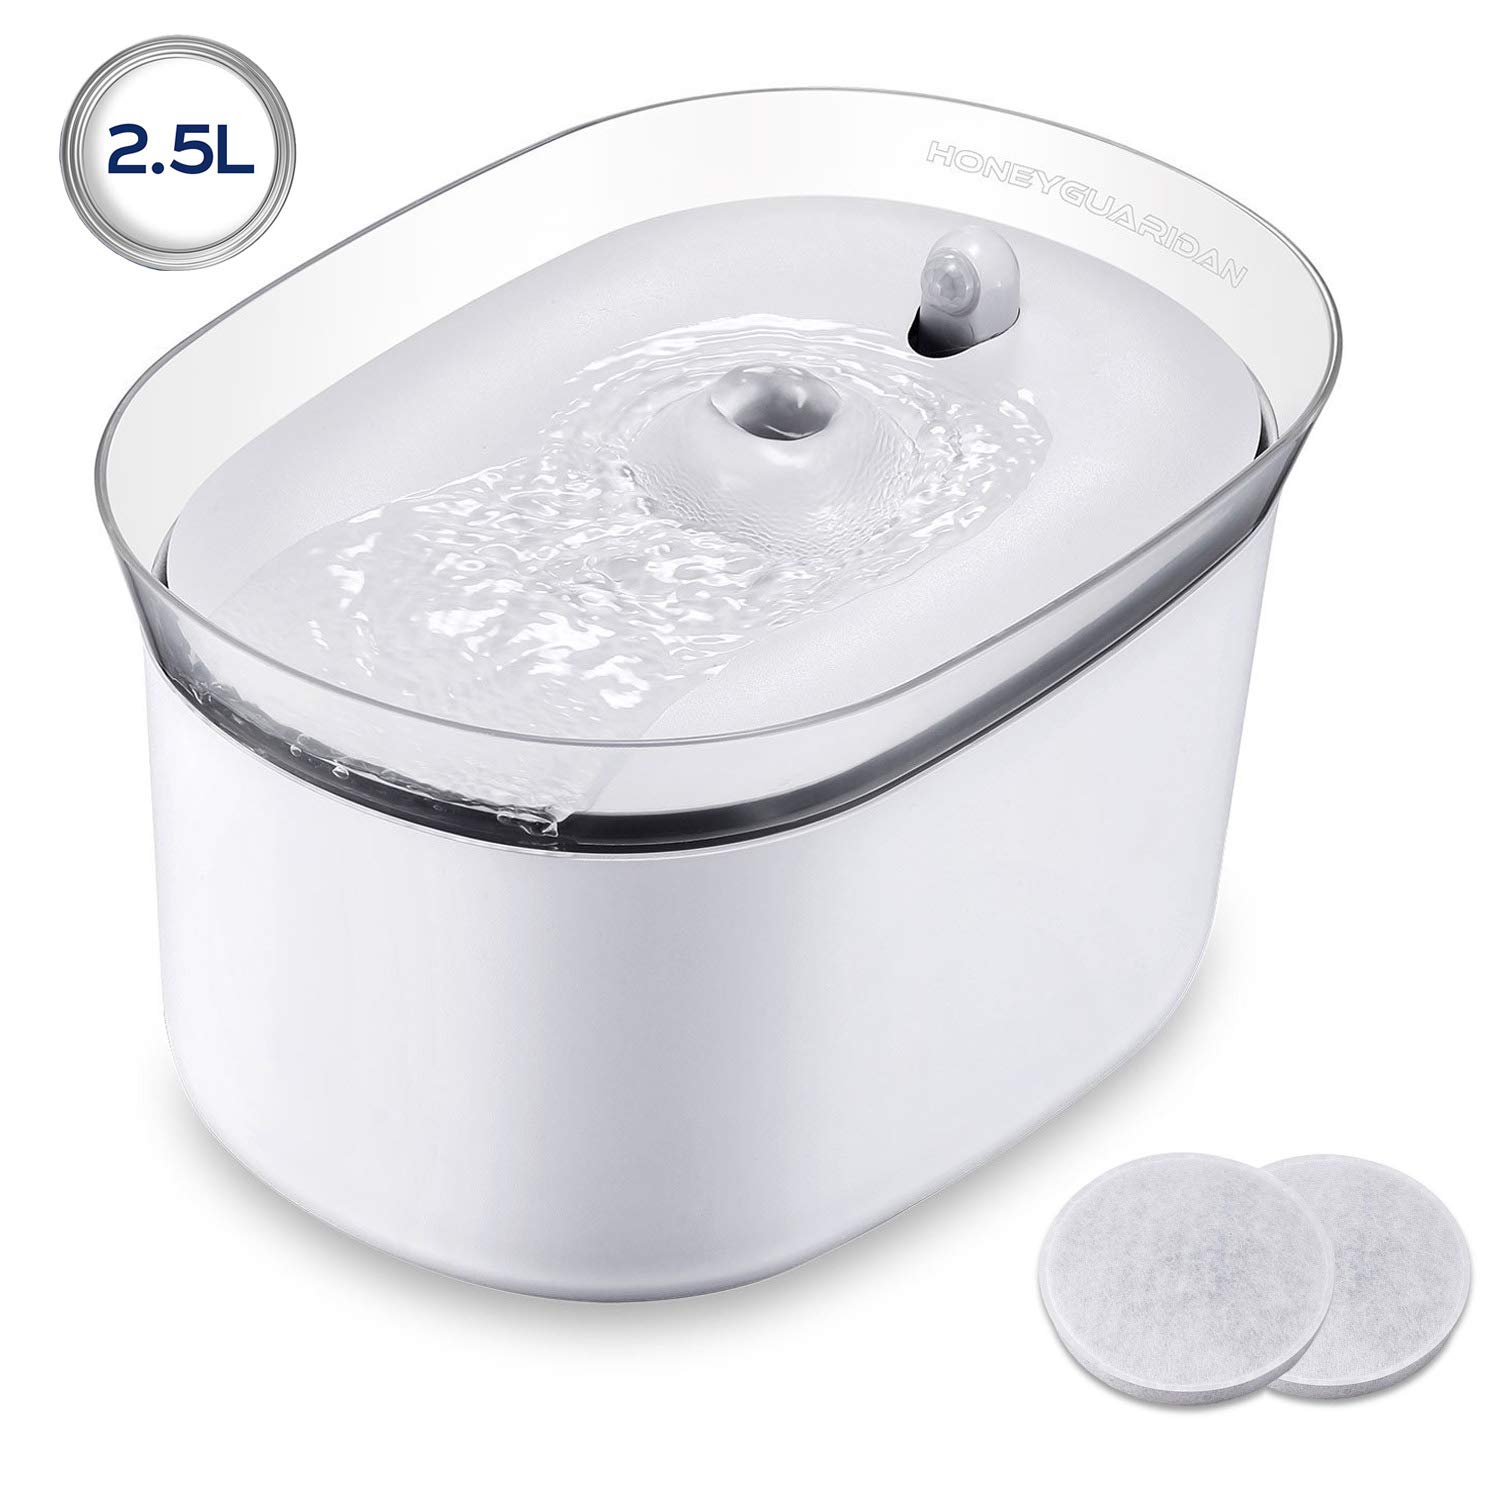 HoneyGuaridan Pet Drinking Water Fountain, Super Quiet Automatic Cat Water Dispenser with 2 Replacement Filters for Dogs, Cats, Birds and Small Animals